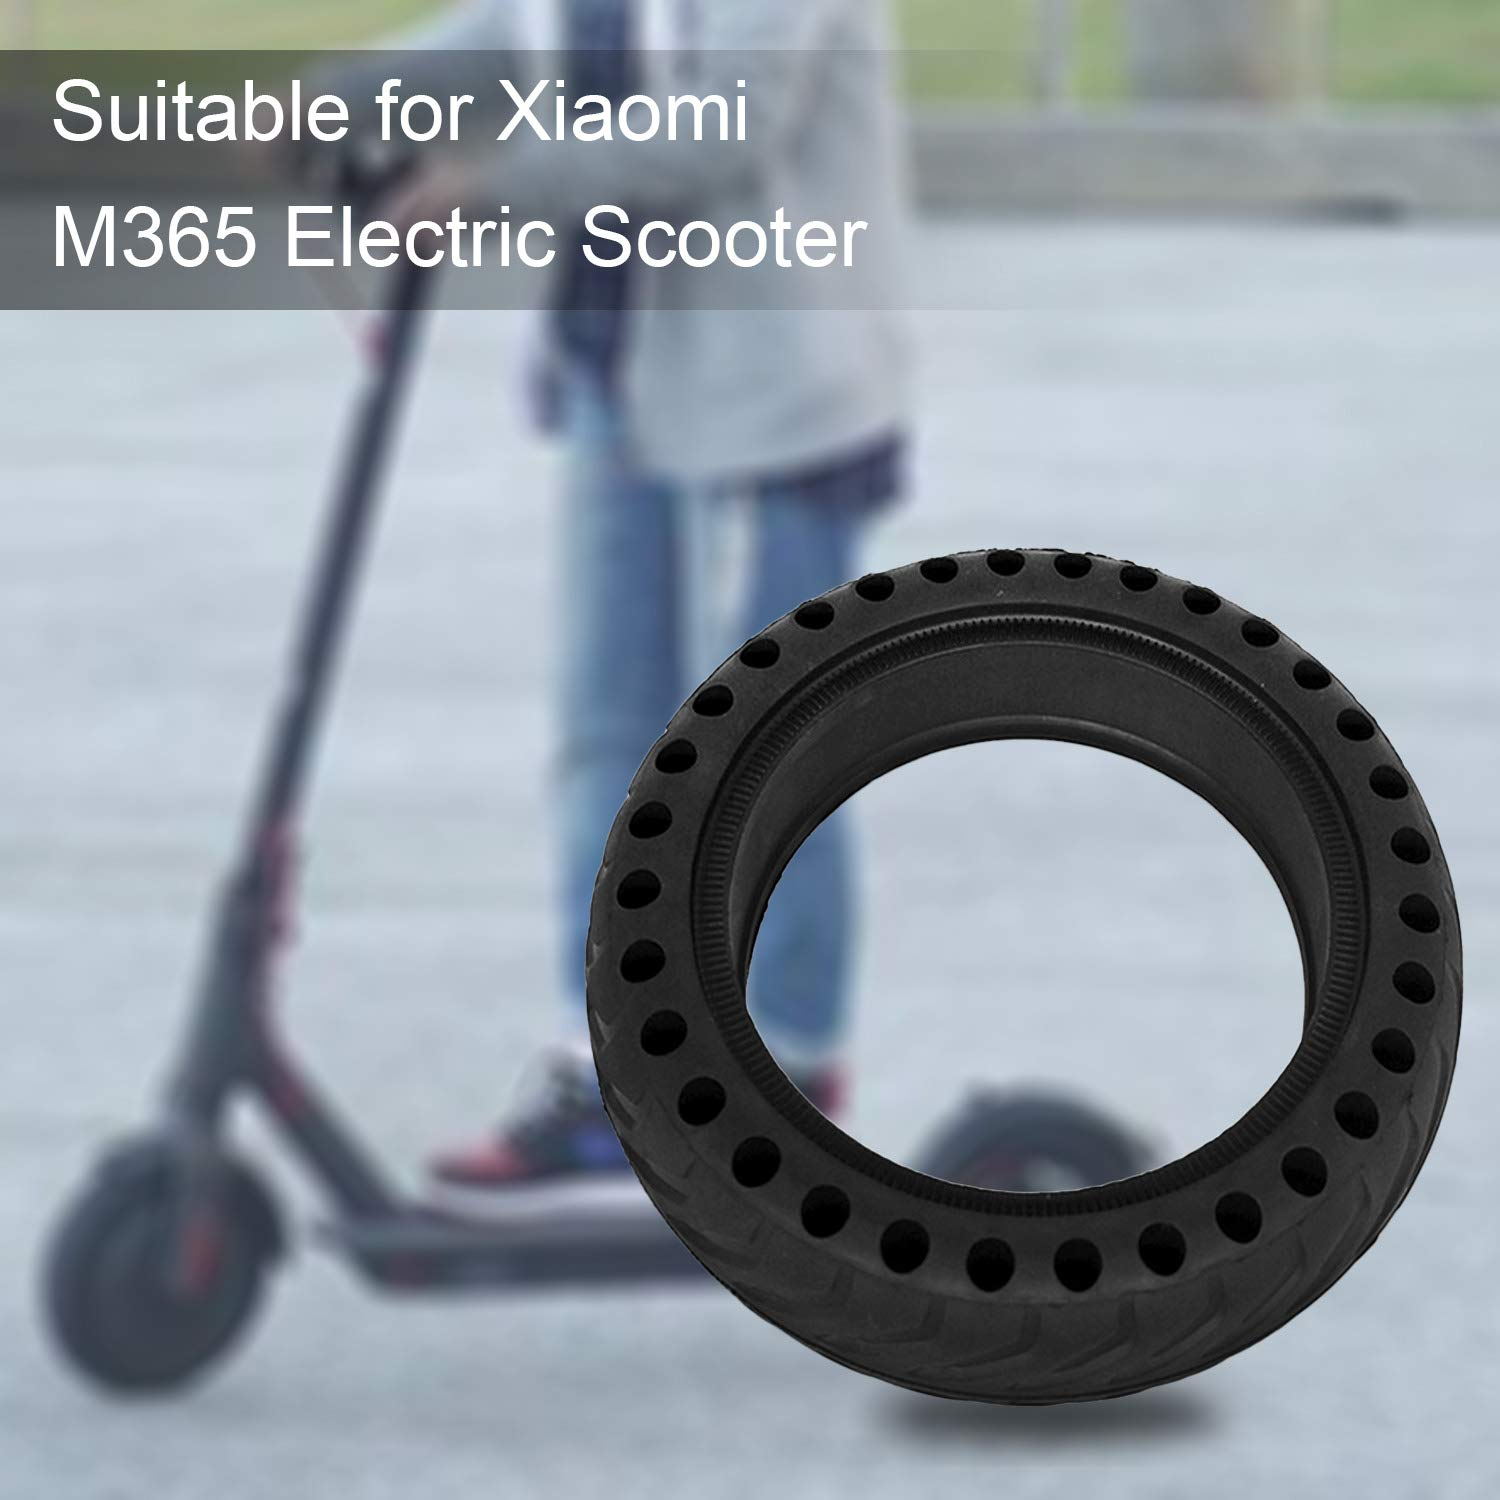 LuYang 2pcs 8 1//2 x 2 Honeycomb Hole Solid Tubes Replacement Tyre Tires Compatible with Xiaomi Xiao Mi Mijia M365 Electric Scooter